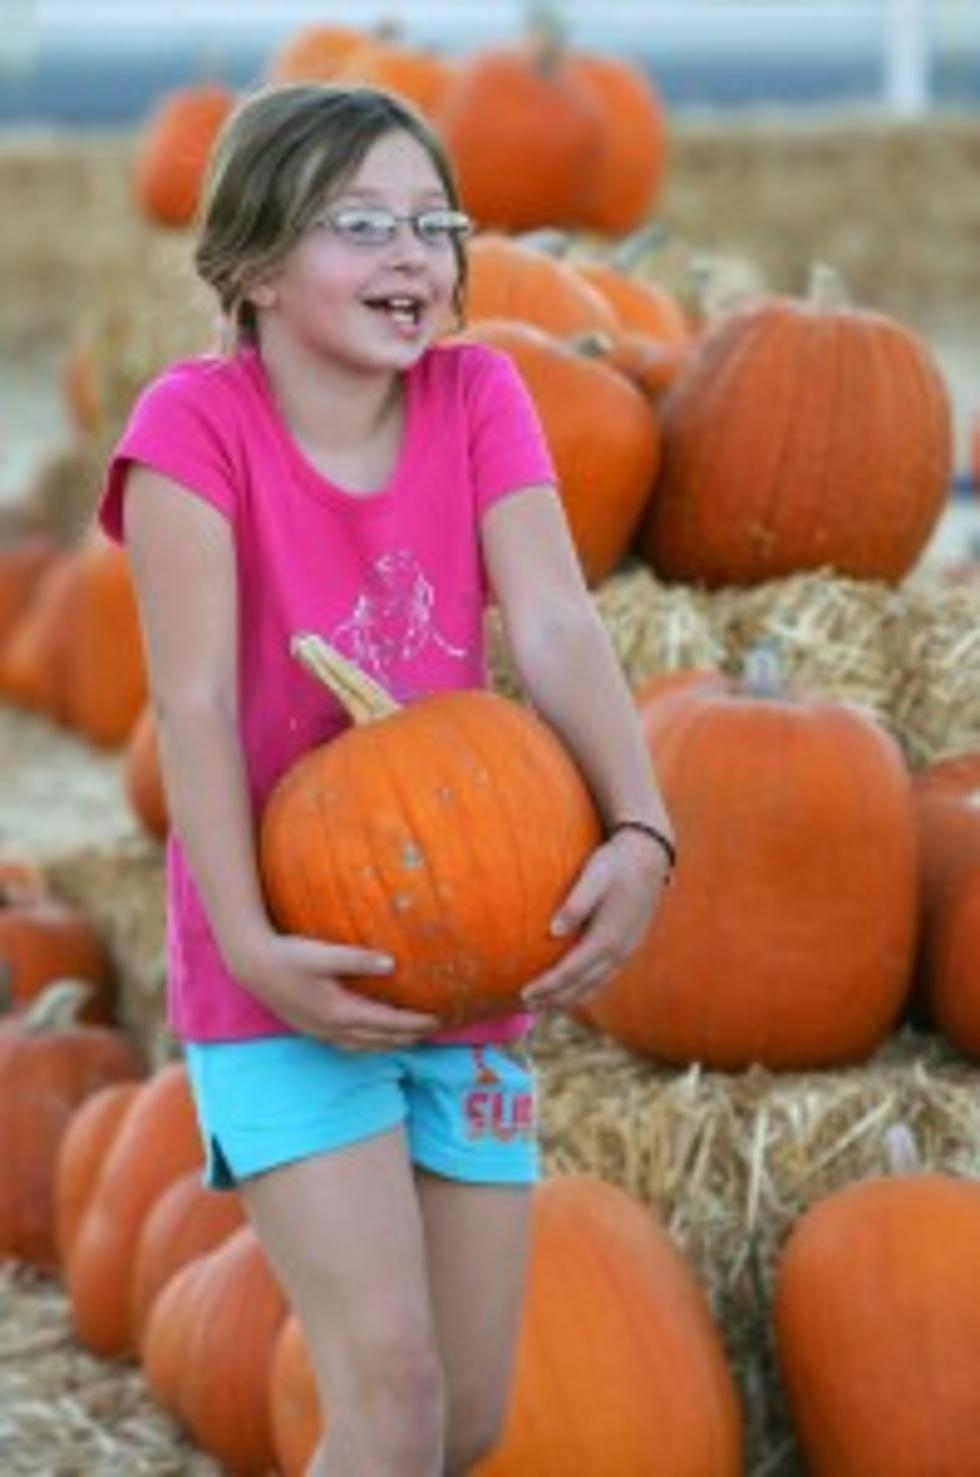 Pumpkin patch presented by jlsb provenance.